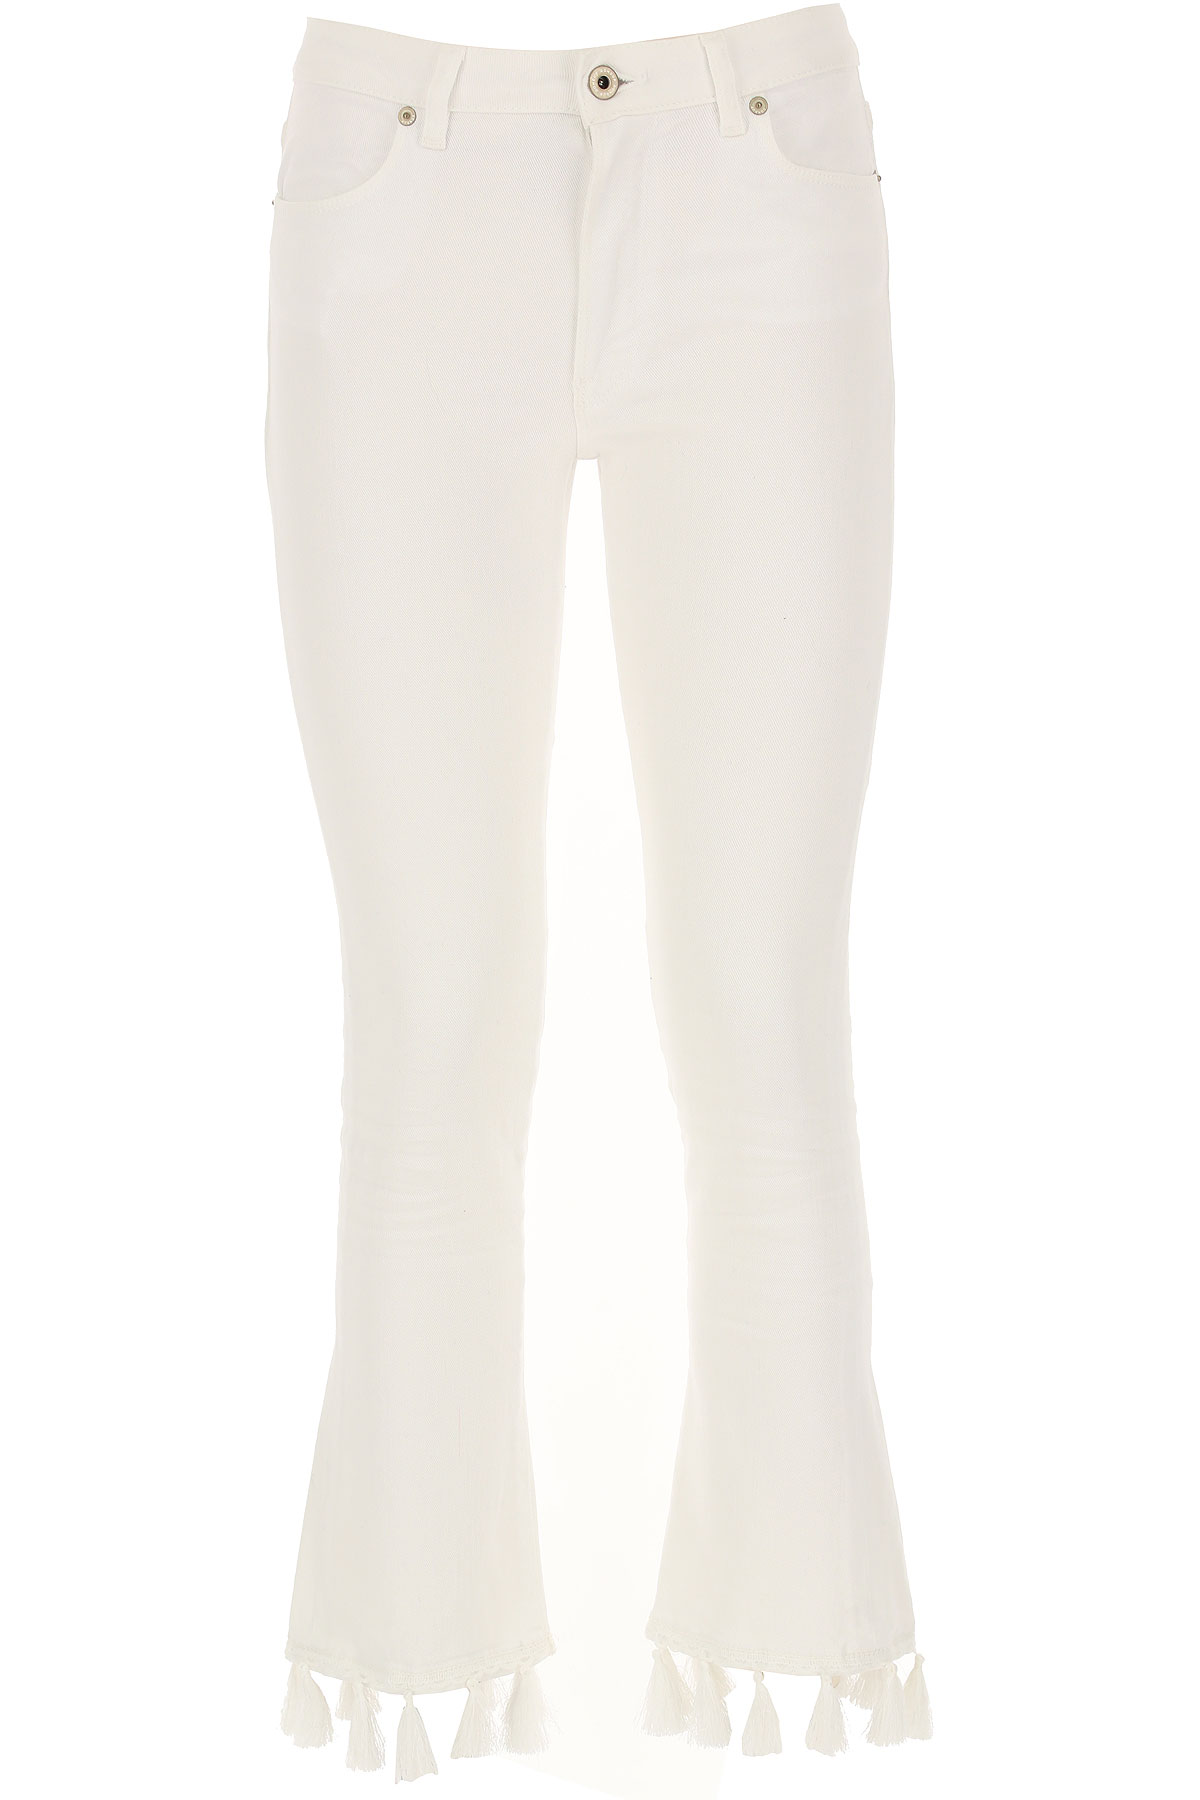 Dondup Jeans, White, Cotton, 2017, 25 26 27 28 29 30 32